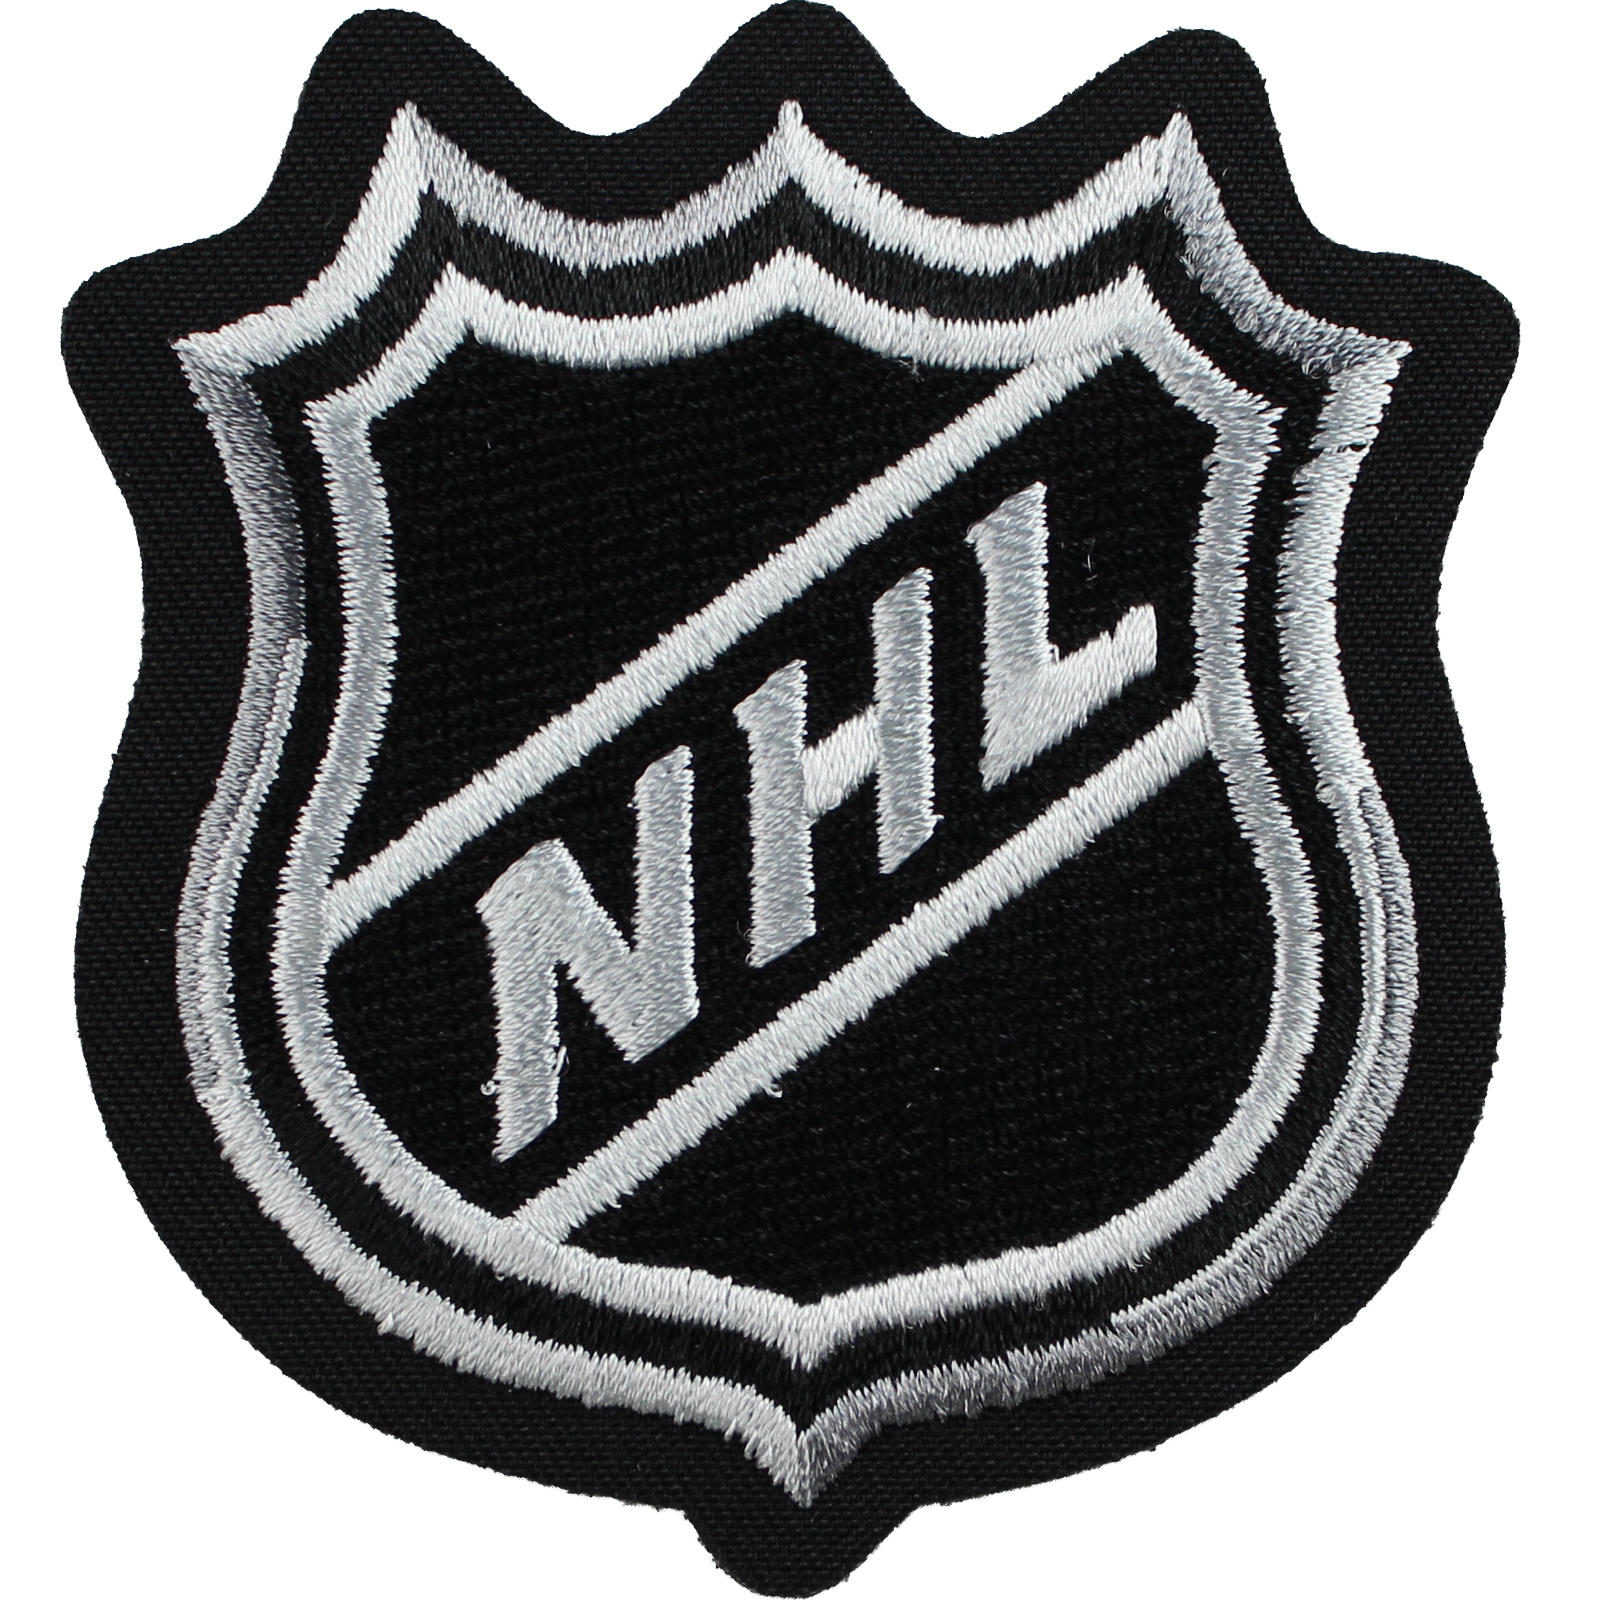 NHL Official National Hockey League Shield Logo Large Patch